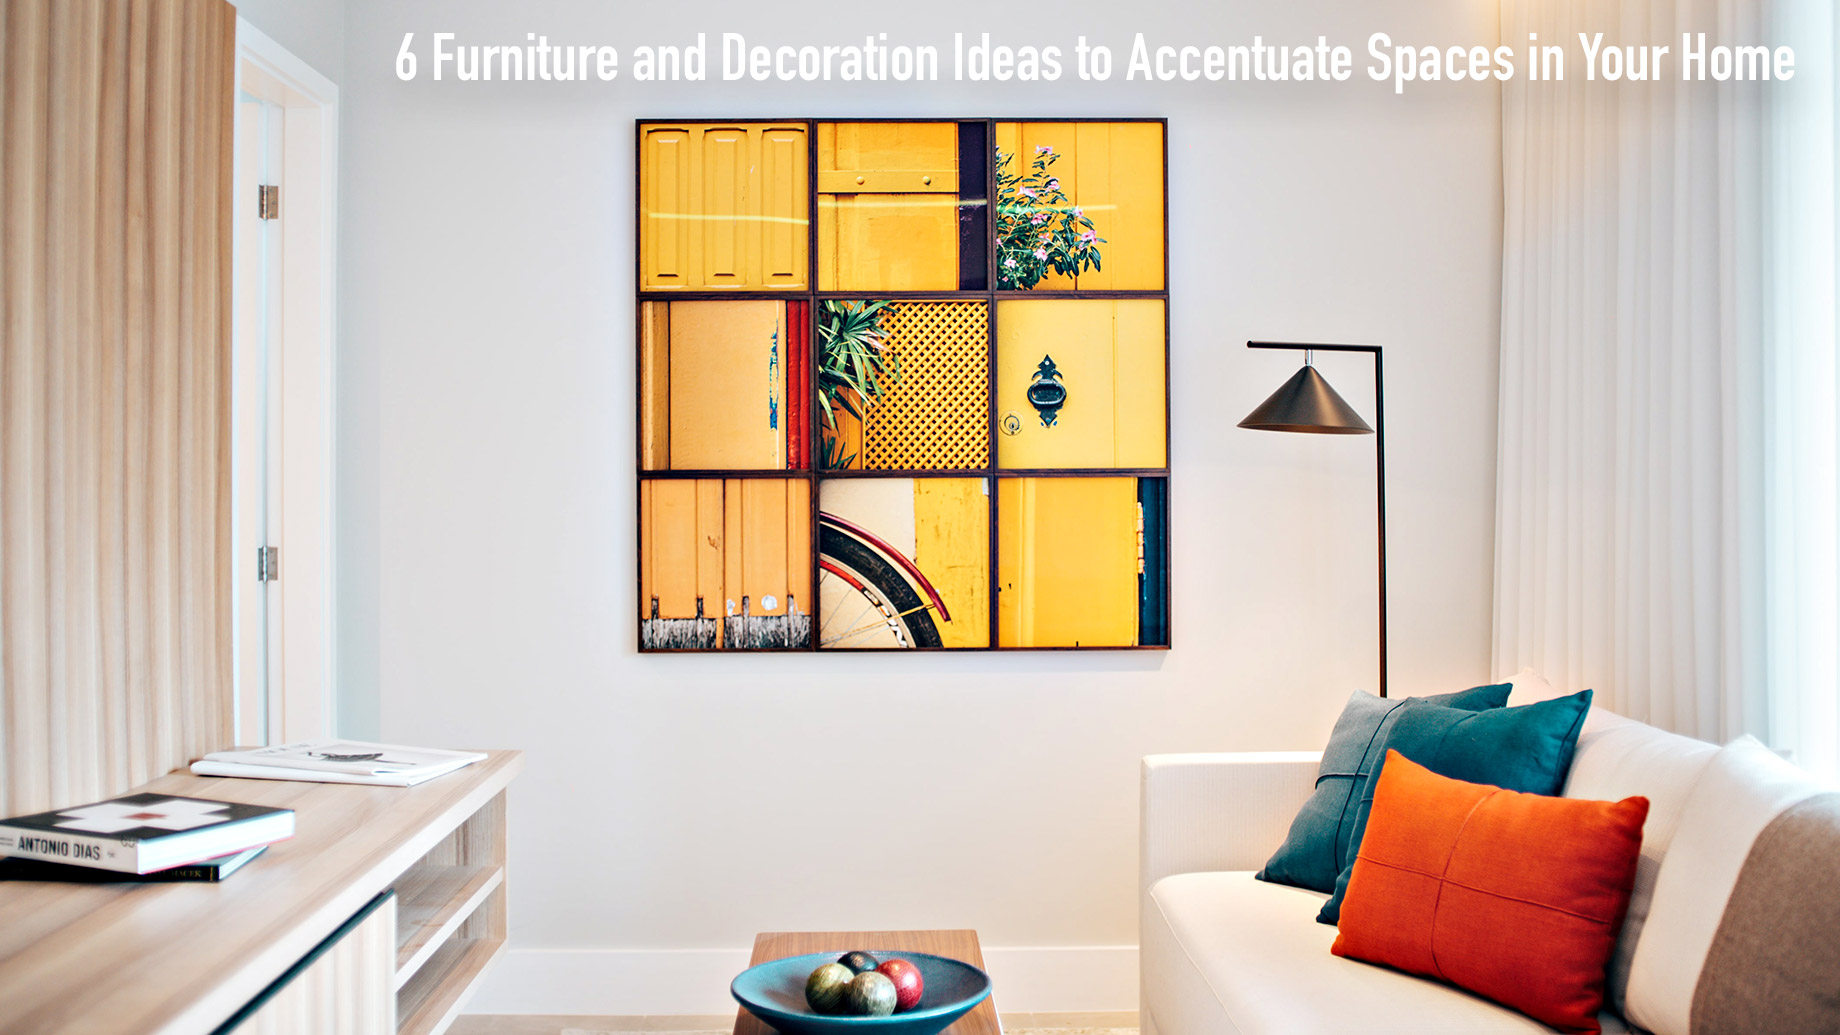 6 Furniture and Decoration Ideas to Accentuate Spaces in Your Home